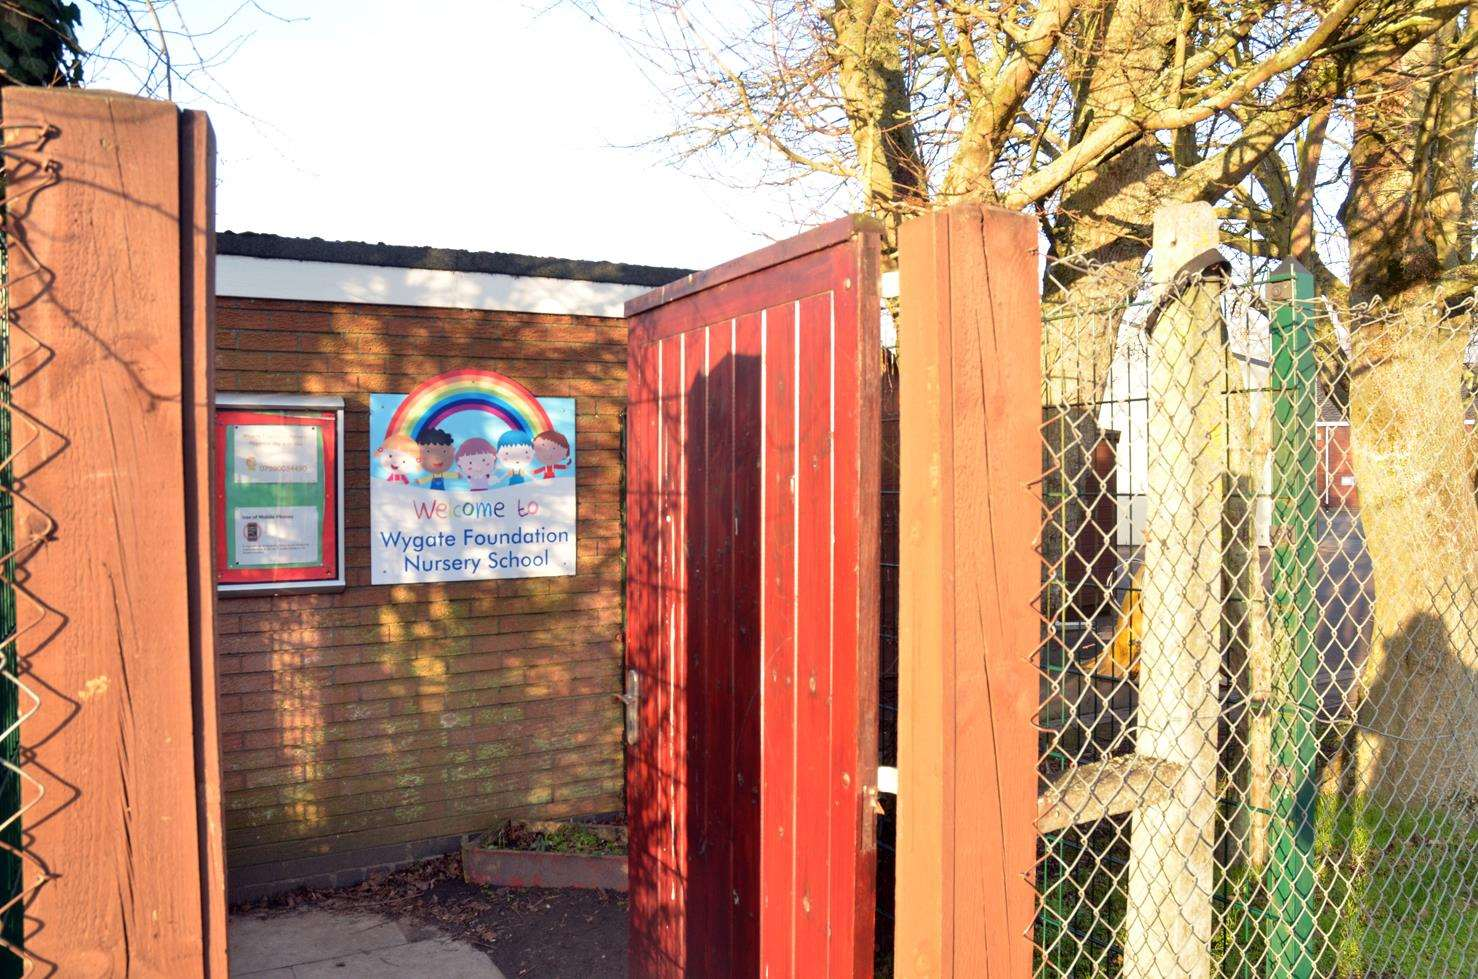 Wygate Foundation Nursery School has applied for planning permission to build a permanent classroom. Photo (TIM WILSON): SG-010219-014TW